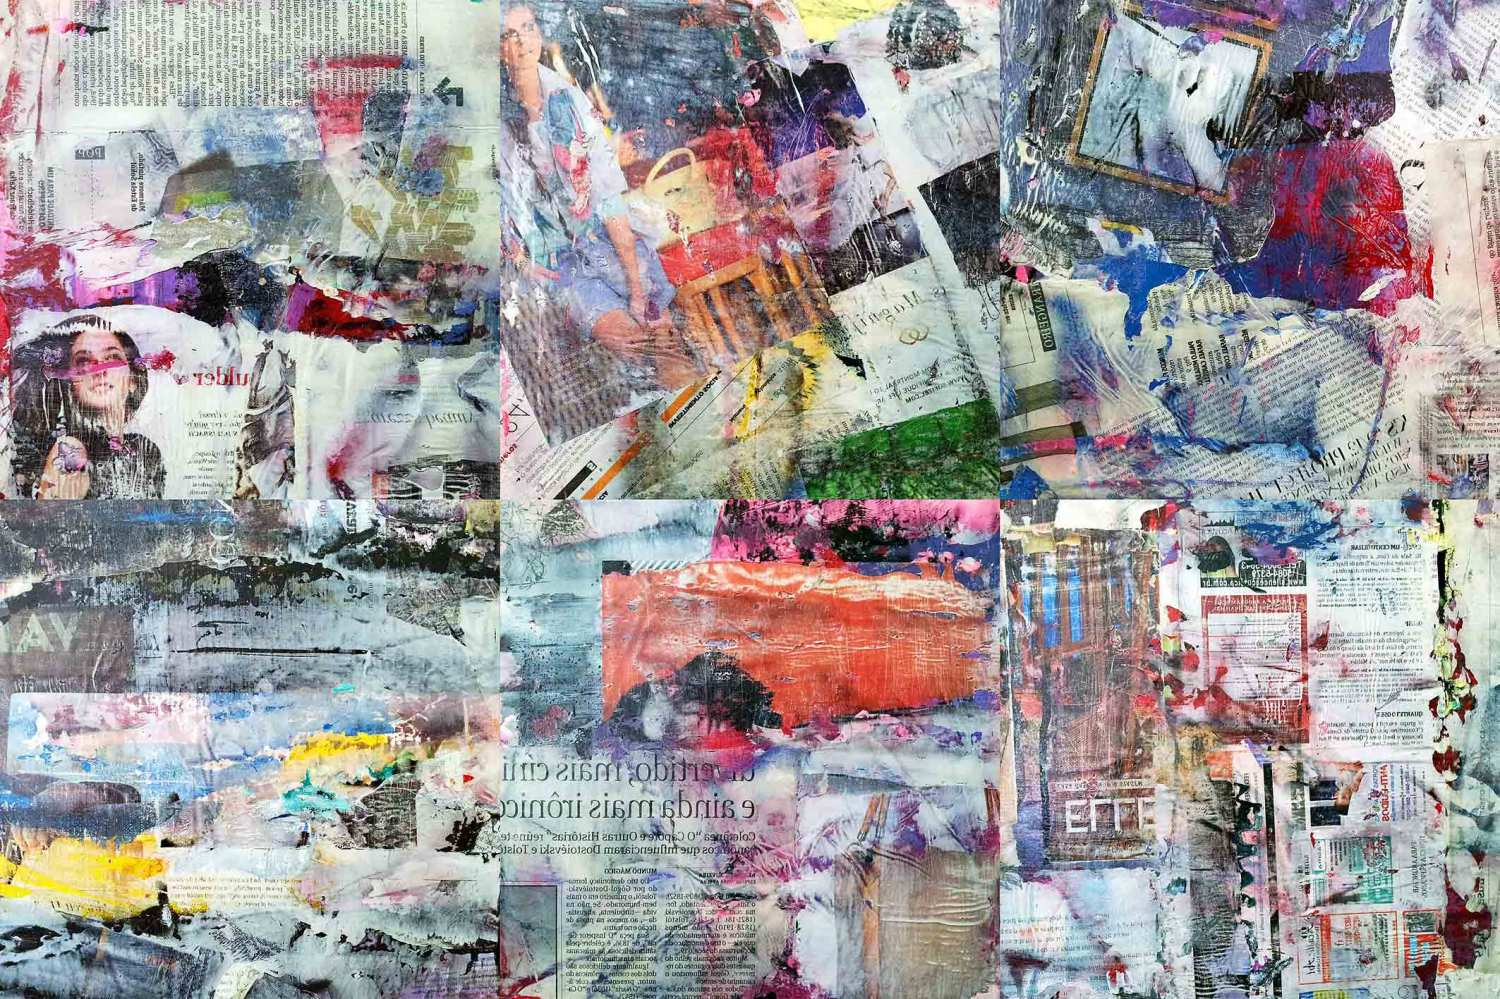 neue wilde (wild youth) – 26 x 26 cm each (6 parts) – acrylic and mixed media collage on canvas mounted on wood boxes – 2012